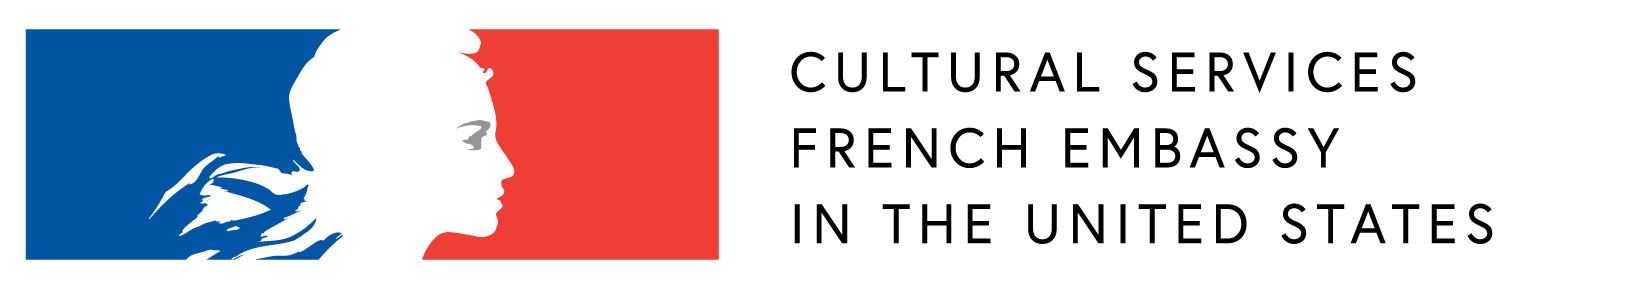 culturalservices-frenchembassy_webready.jpg